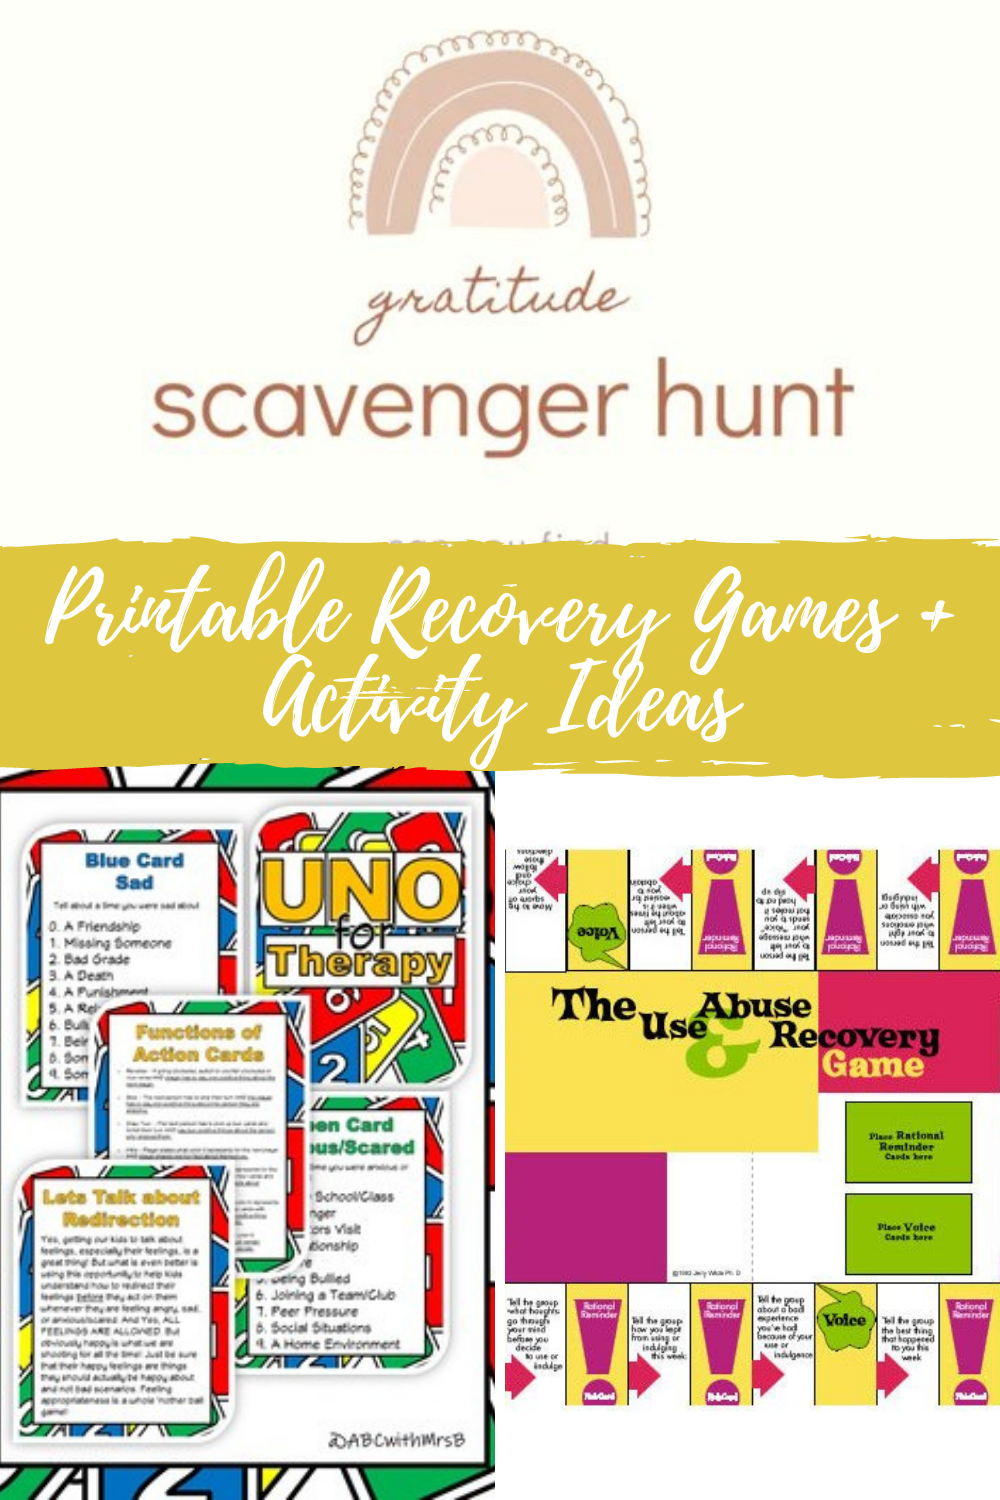 Printable Recovery Ideas Games & Scavenger Hunts